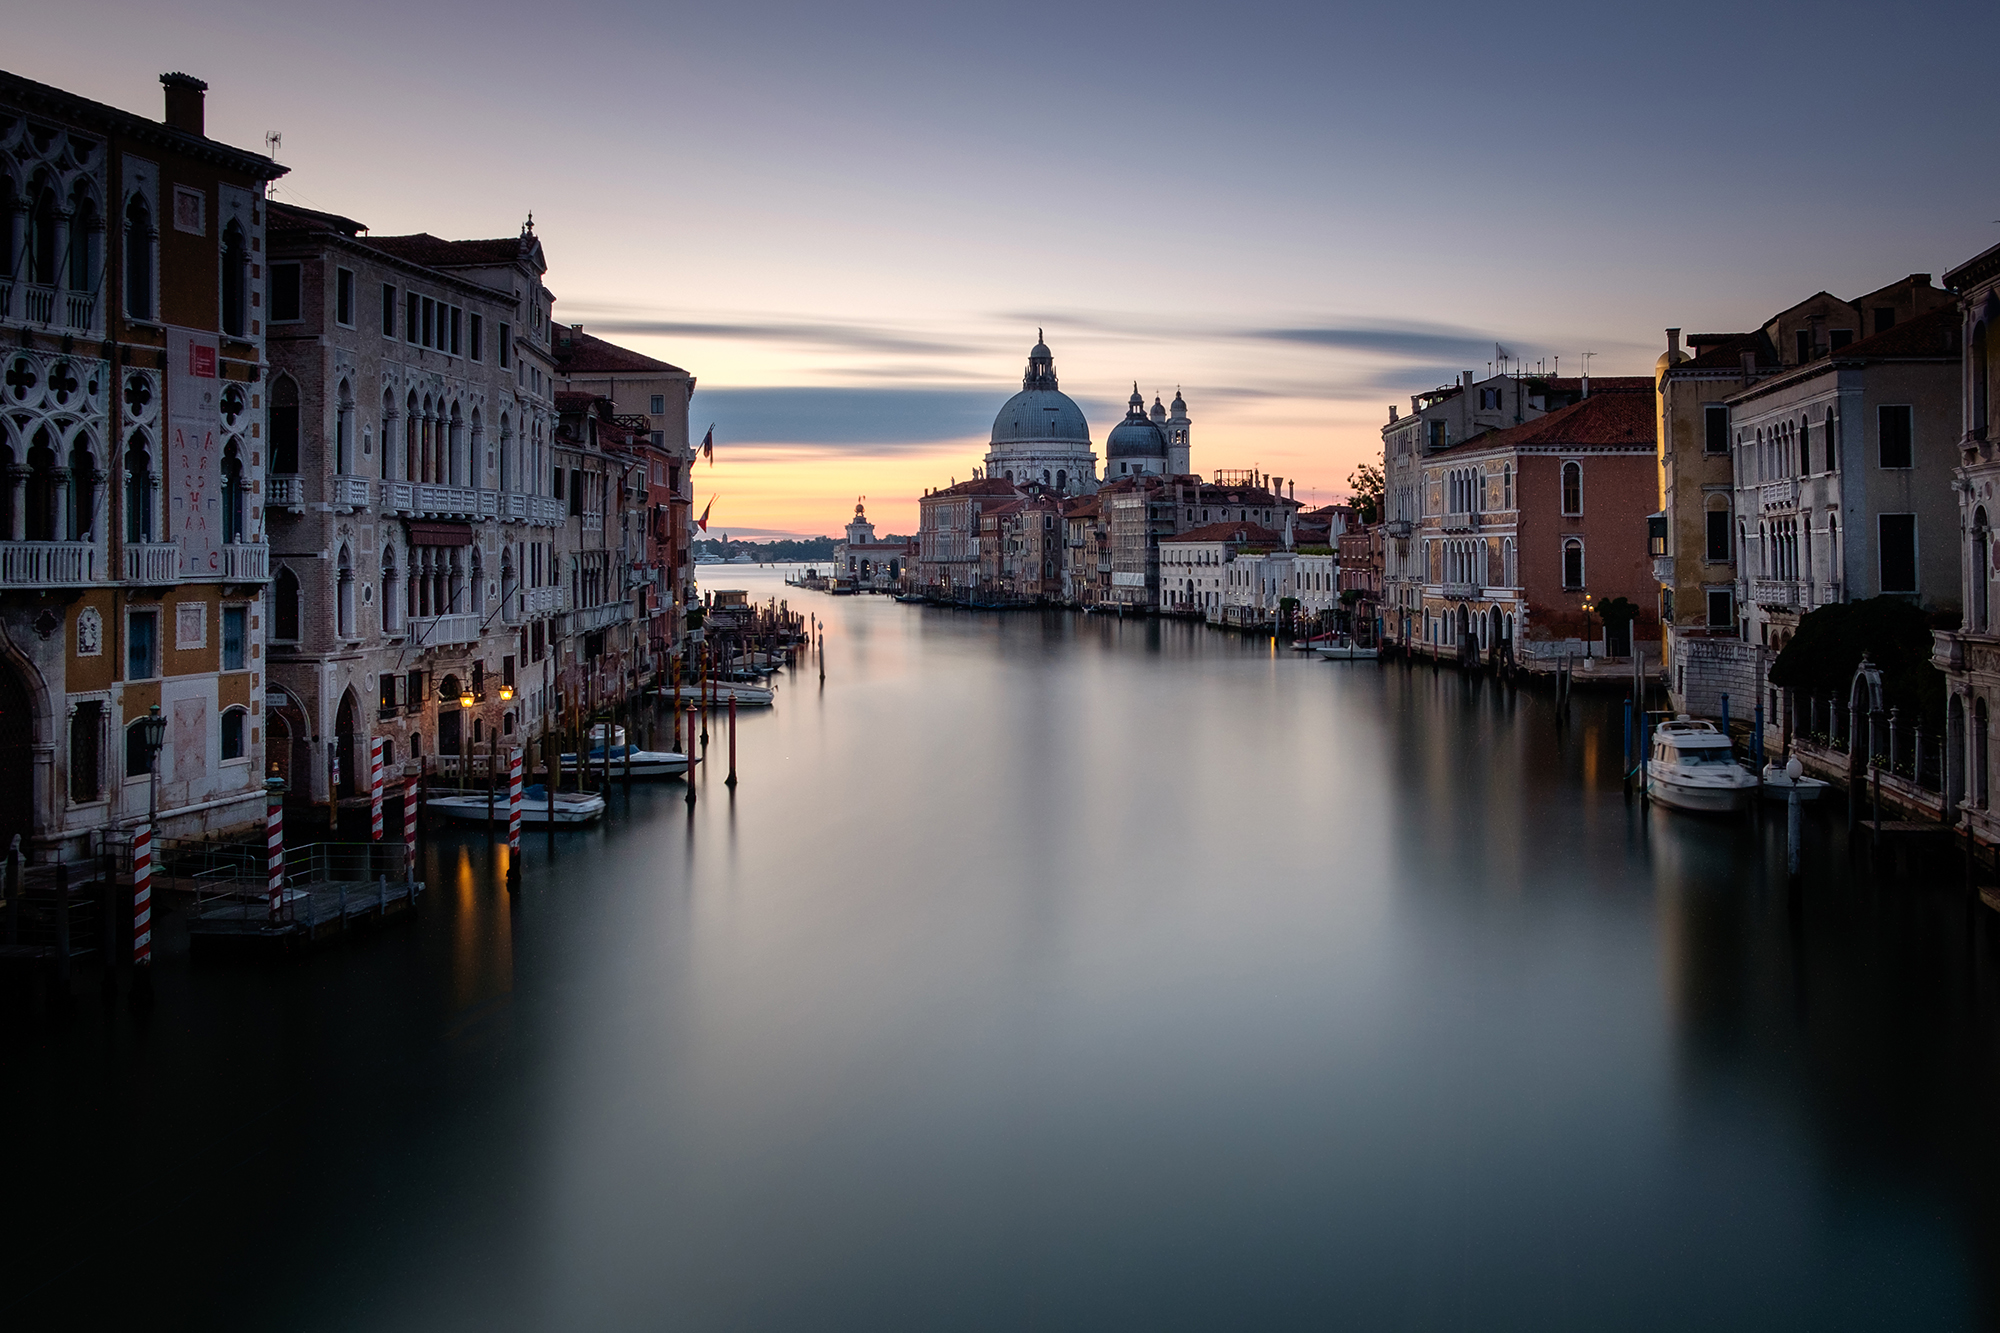 A long exposure photo of the Grand Canal in Venice taken at sunrise by Trevor Sherwin